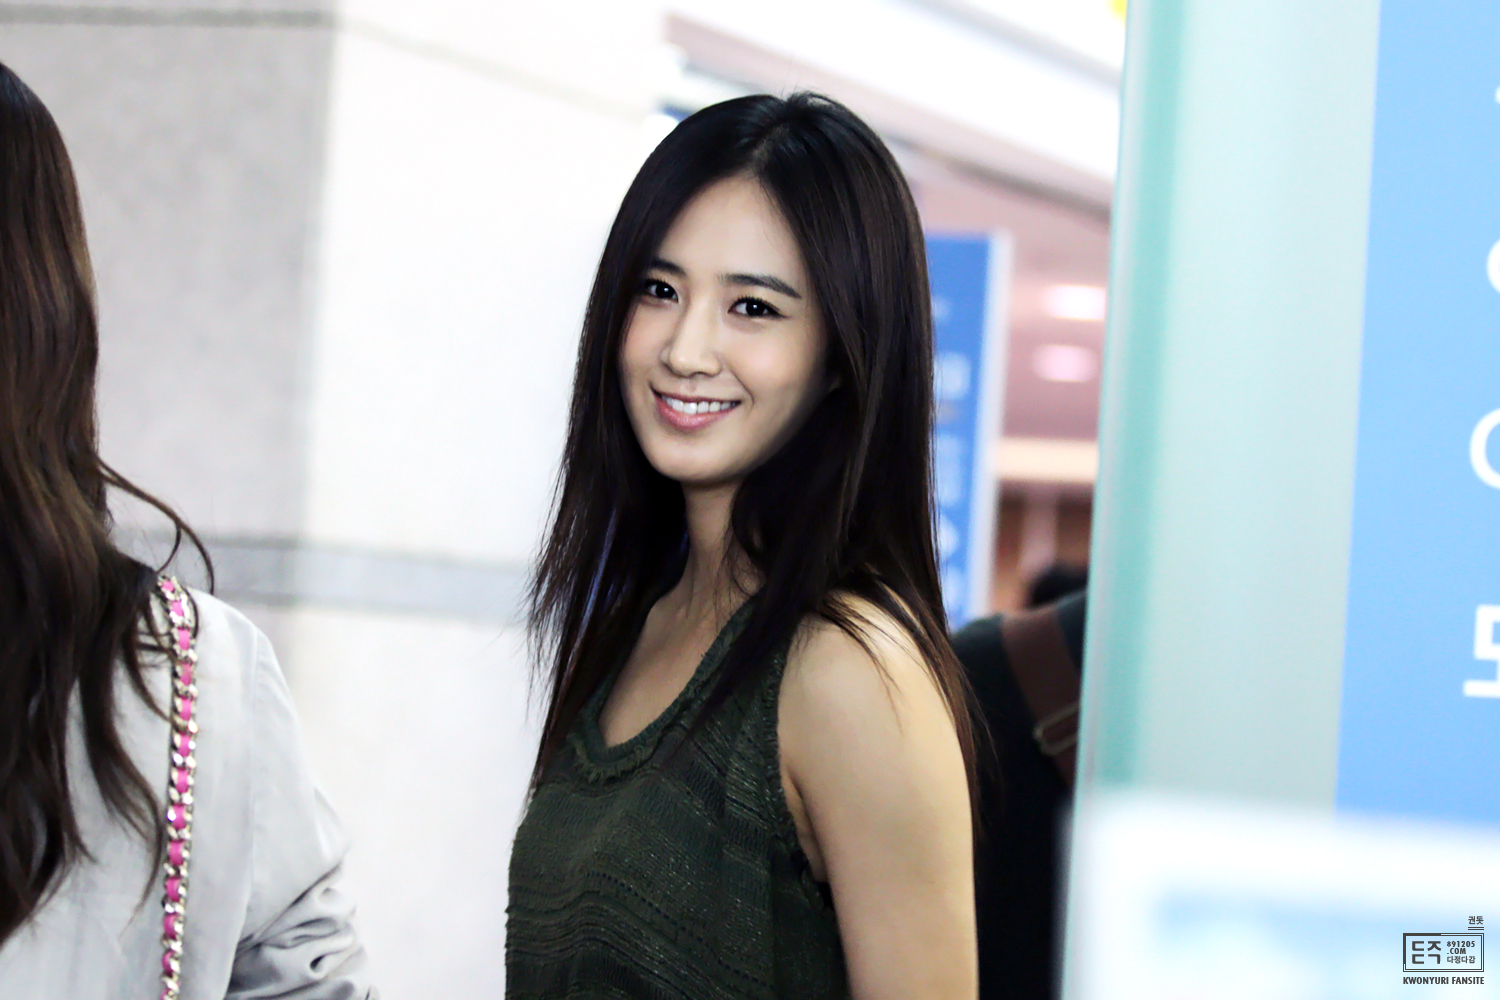 Kwon.Yuri.full.6785 Back into 3 months ago, my ex spouse dumped me because he fell deeply in love with an other woman.